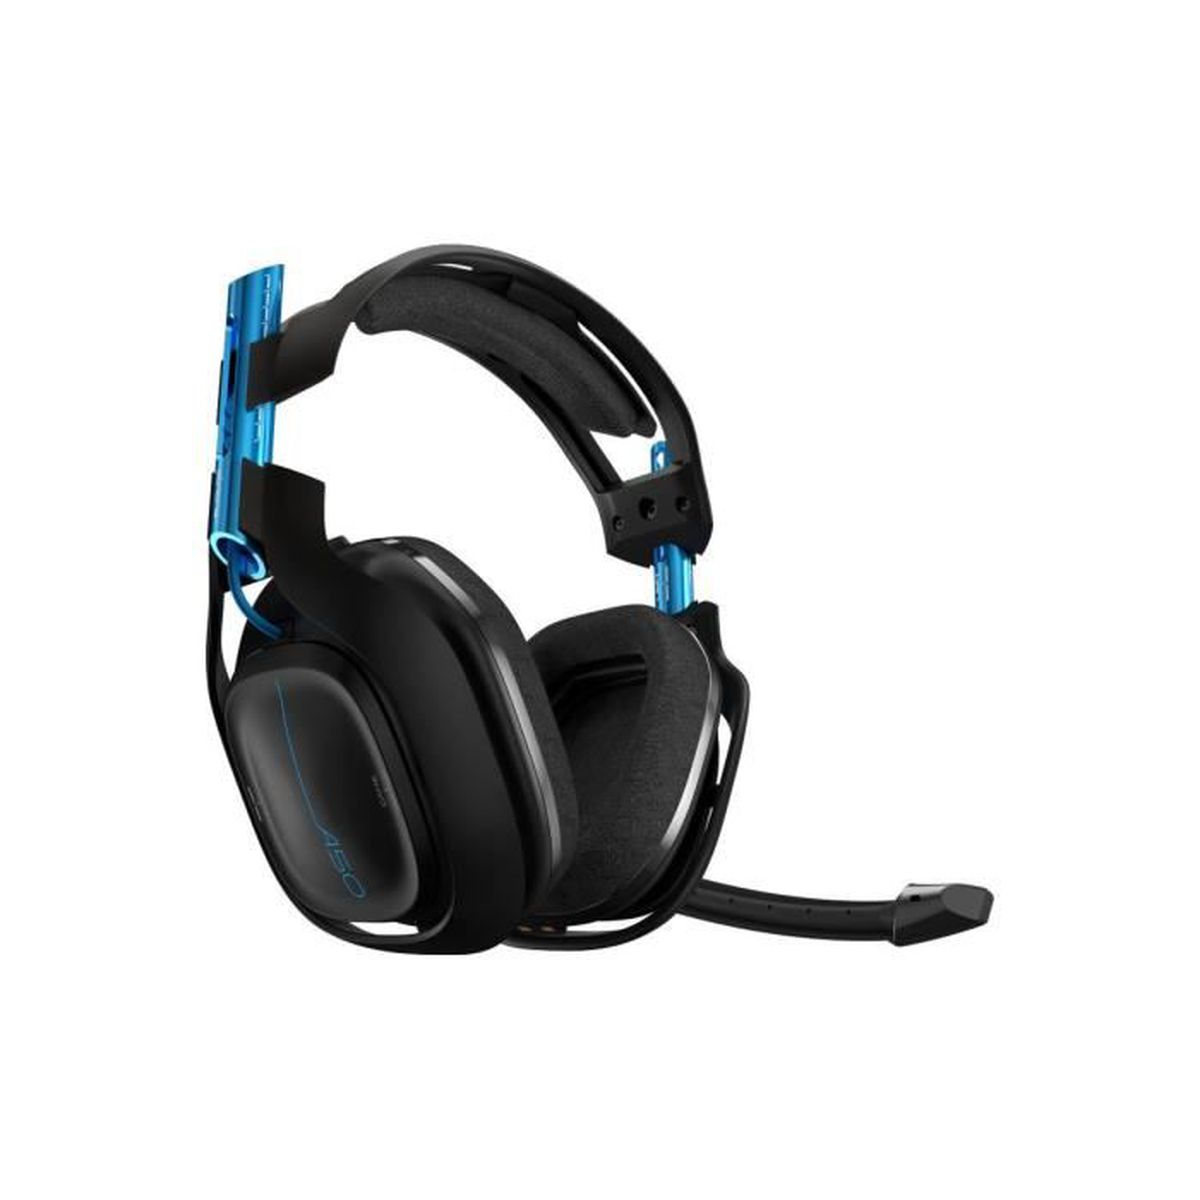 casque gamer astro a50 sans fil base station pour ps4. Black Bedroom Furniture Sets. Home Design Ideas